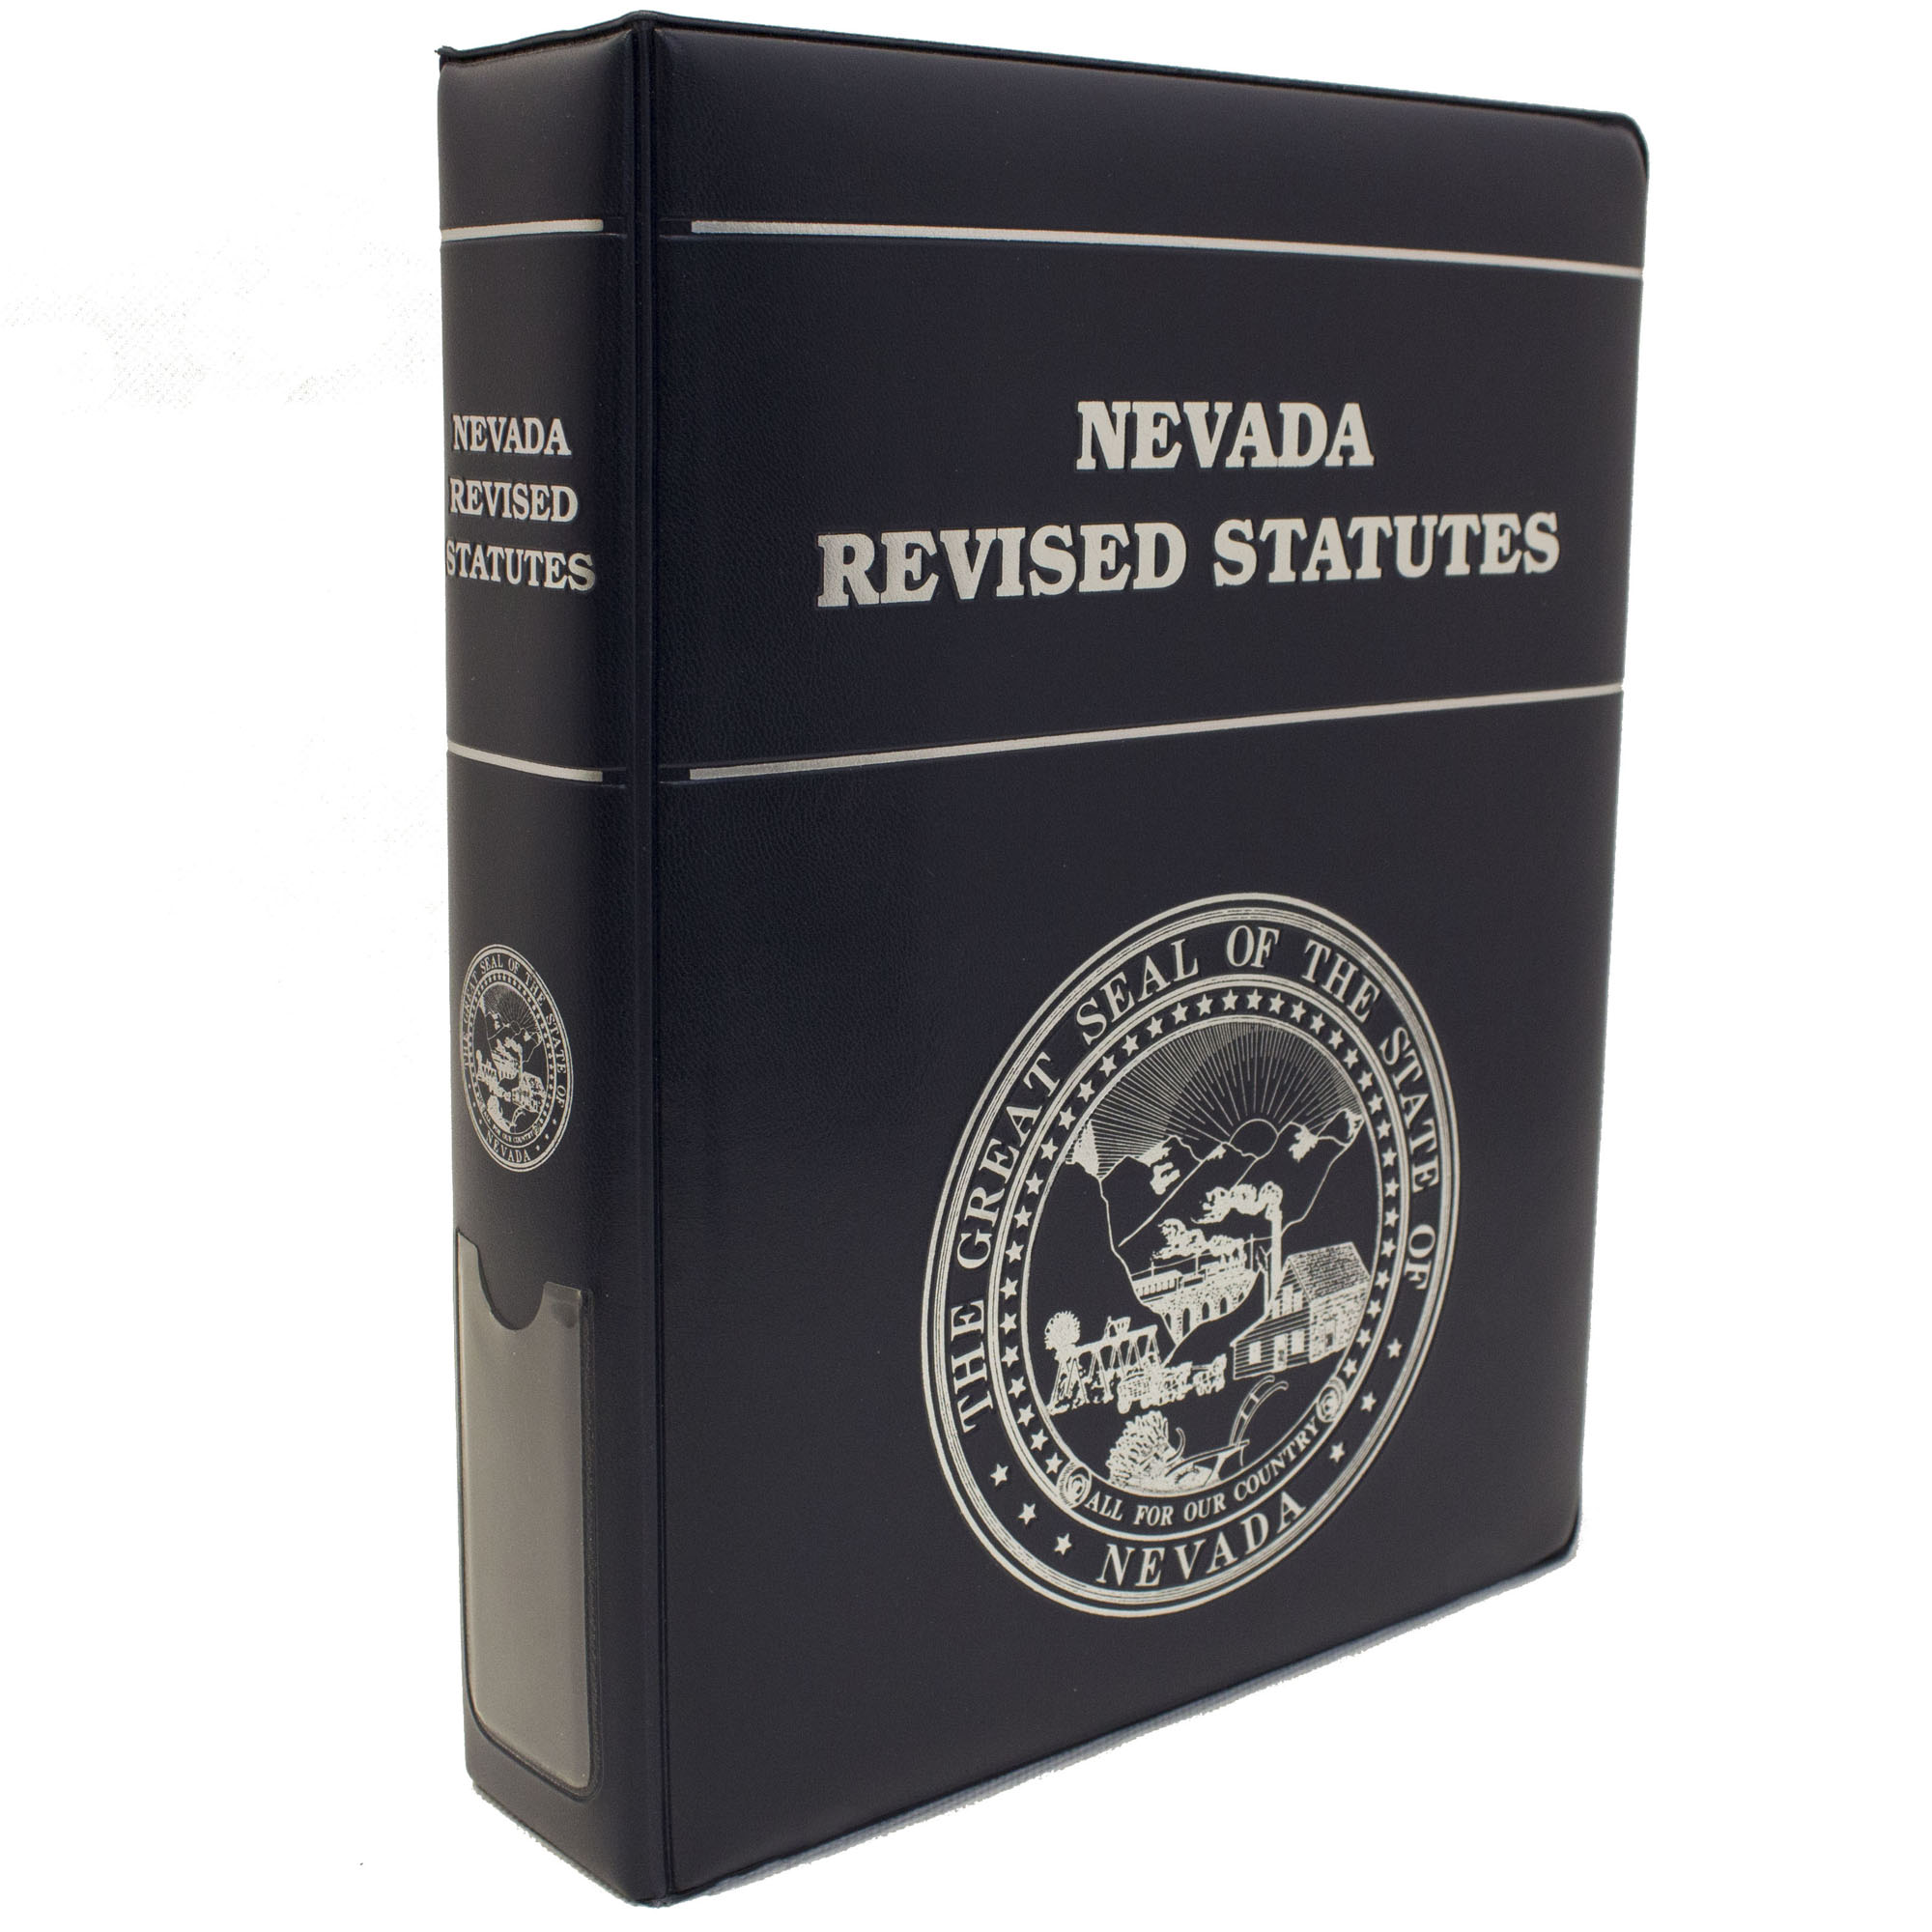 Nevada Revised Statutes >> Nevada Revised Statutes 2017 Pages Only